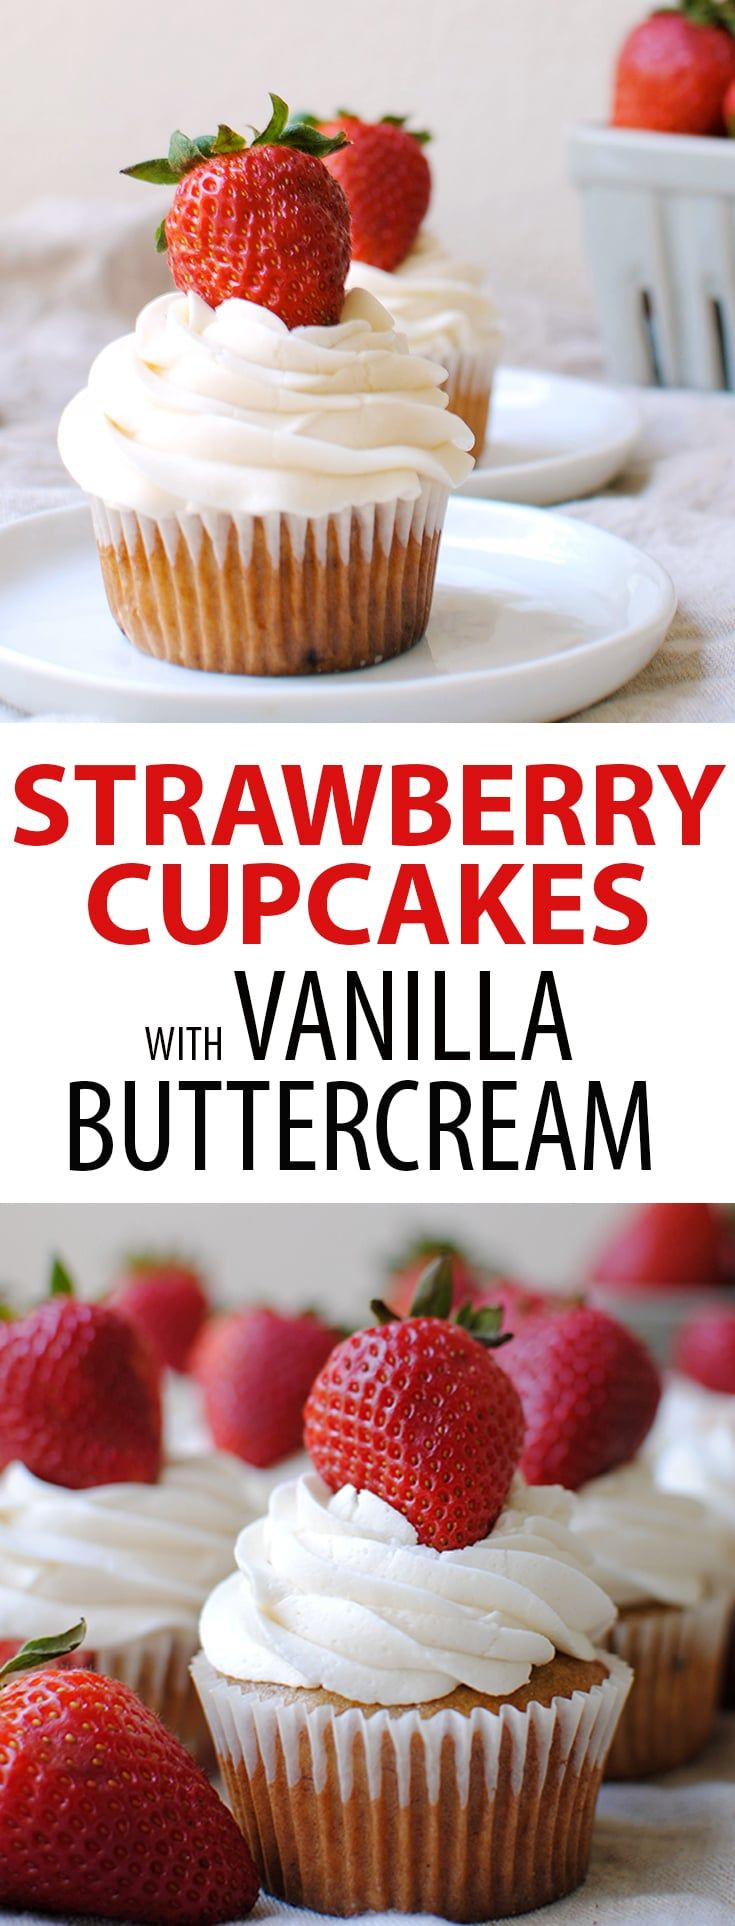 Fresh, juicy strawberries and a luscious vanilla buttercream frosting combine to make this easy and delicious recipe for strawberry cupcakes!